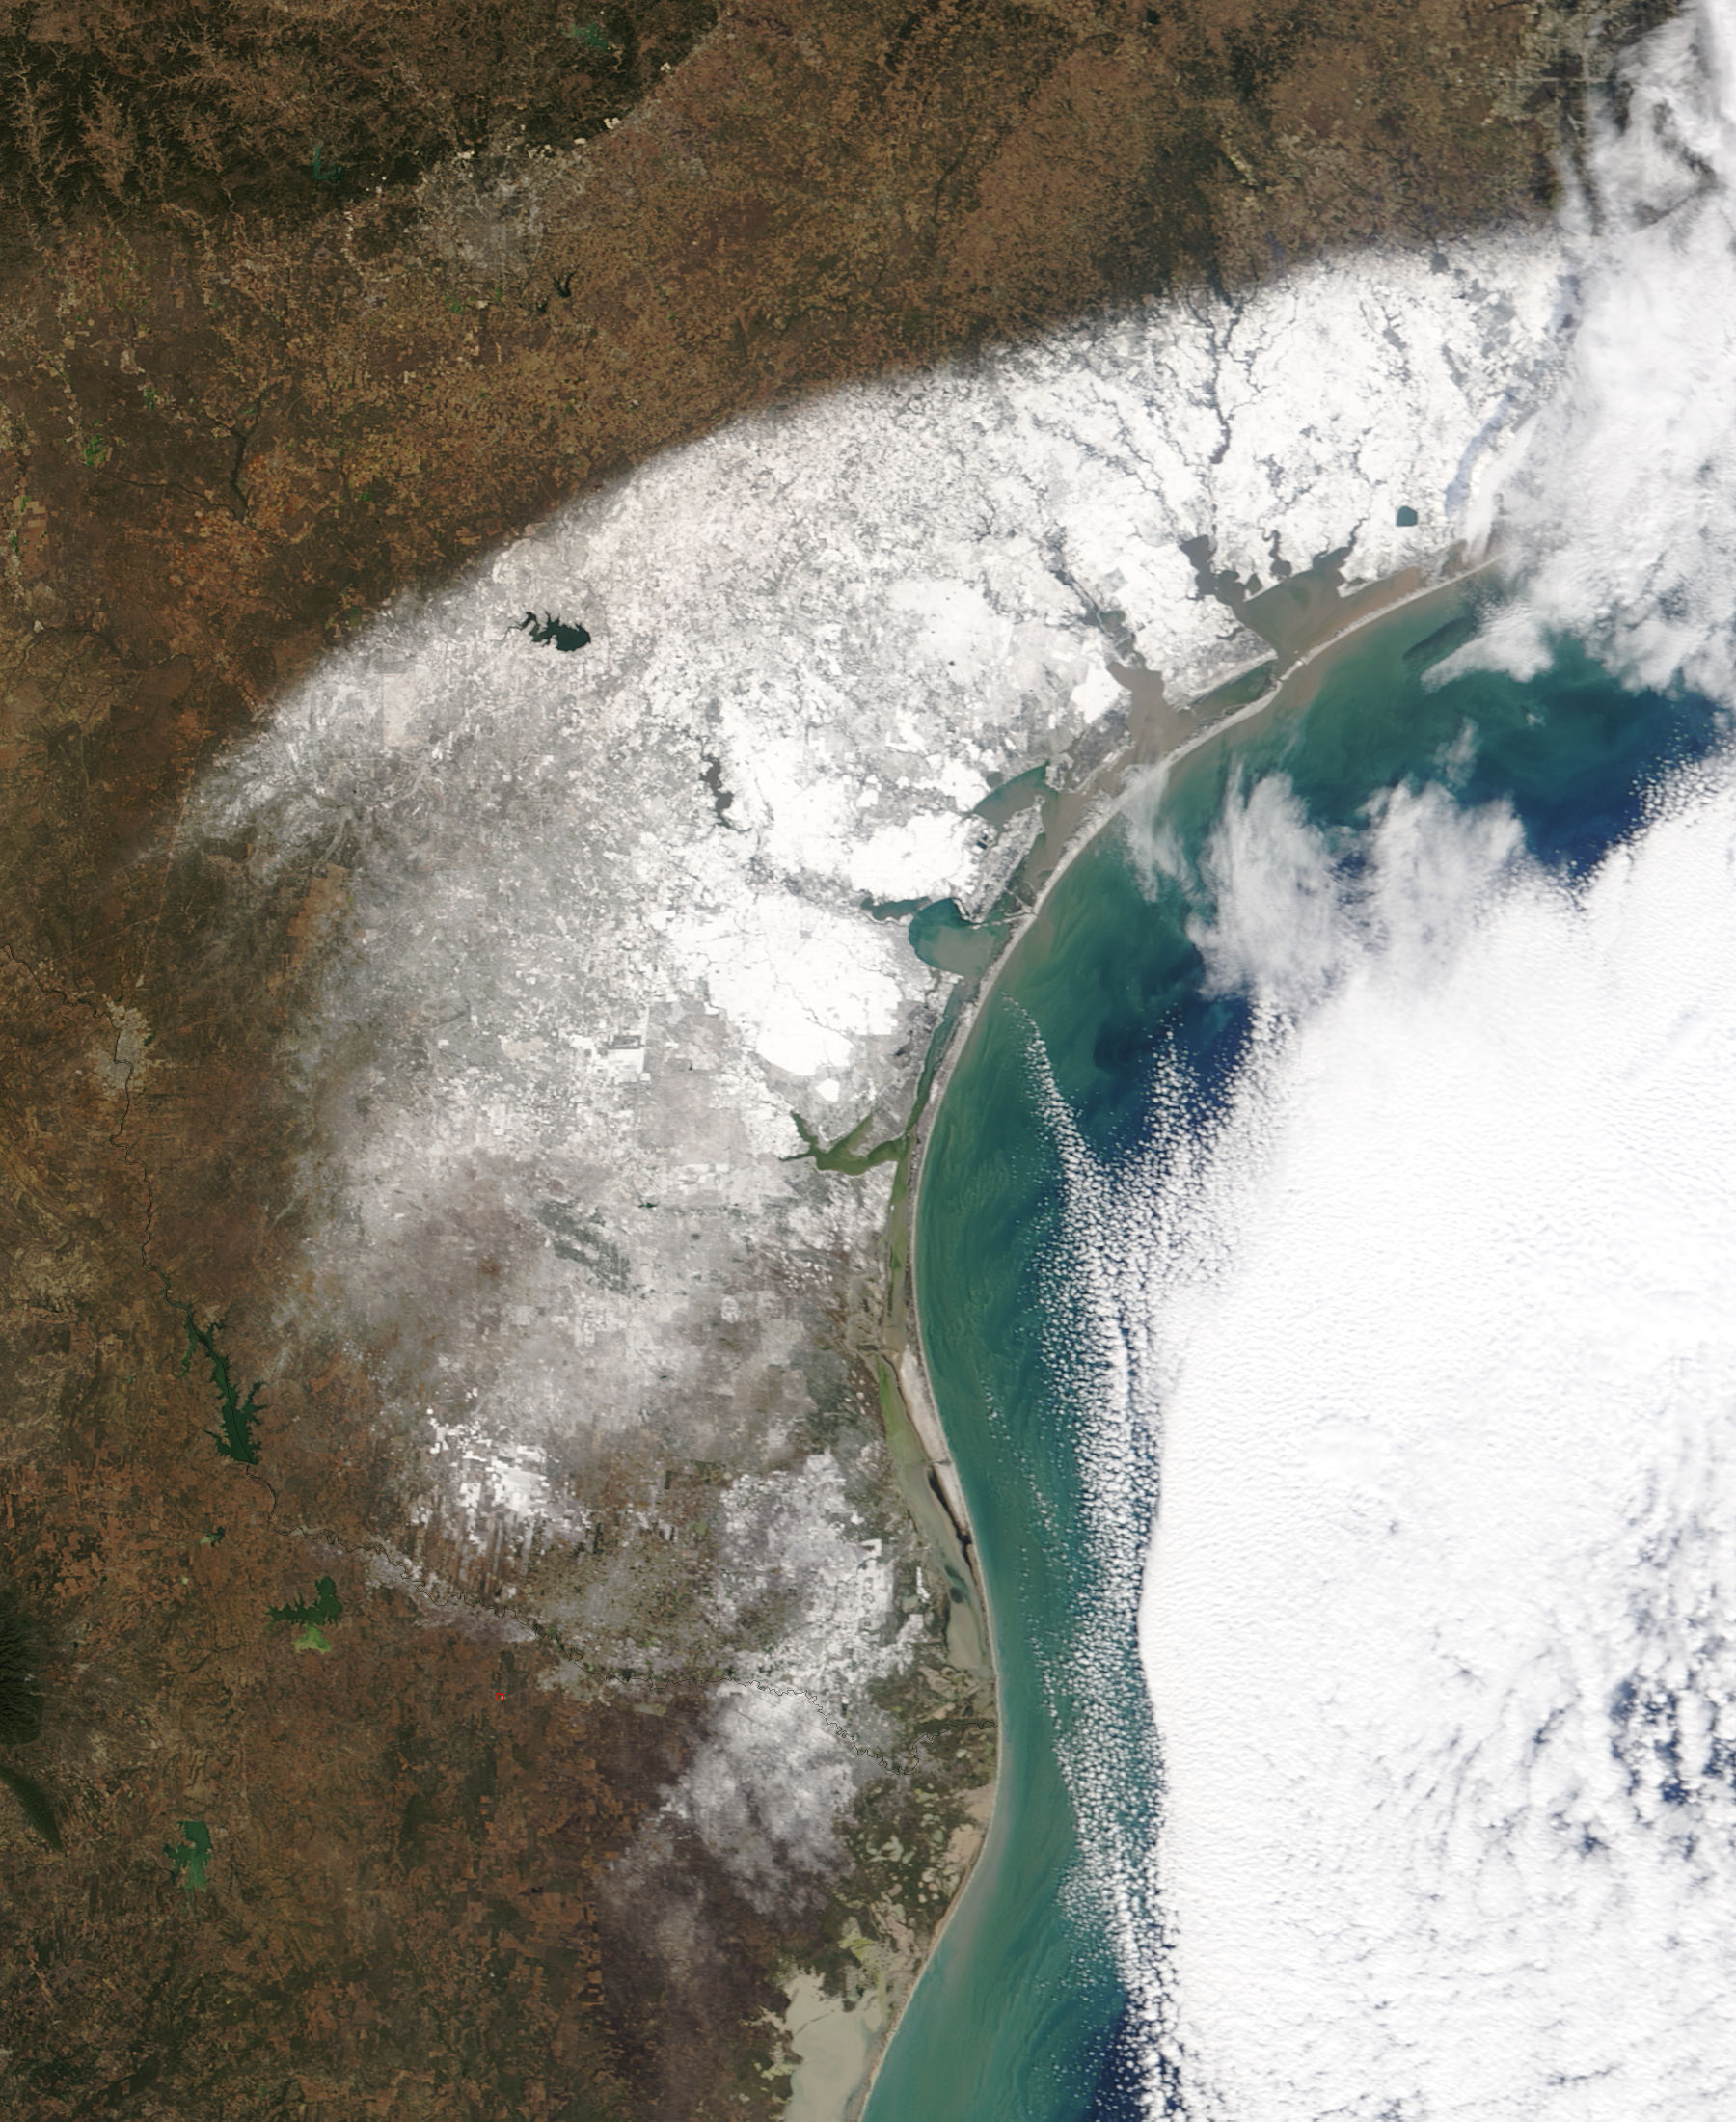 Gulf Of Mexico Vacation Spots In Texas: NASA Visible Earth: Record Snow In Texas